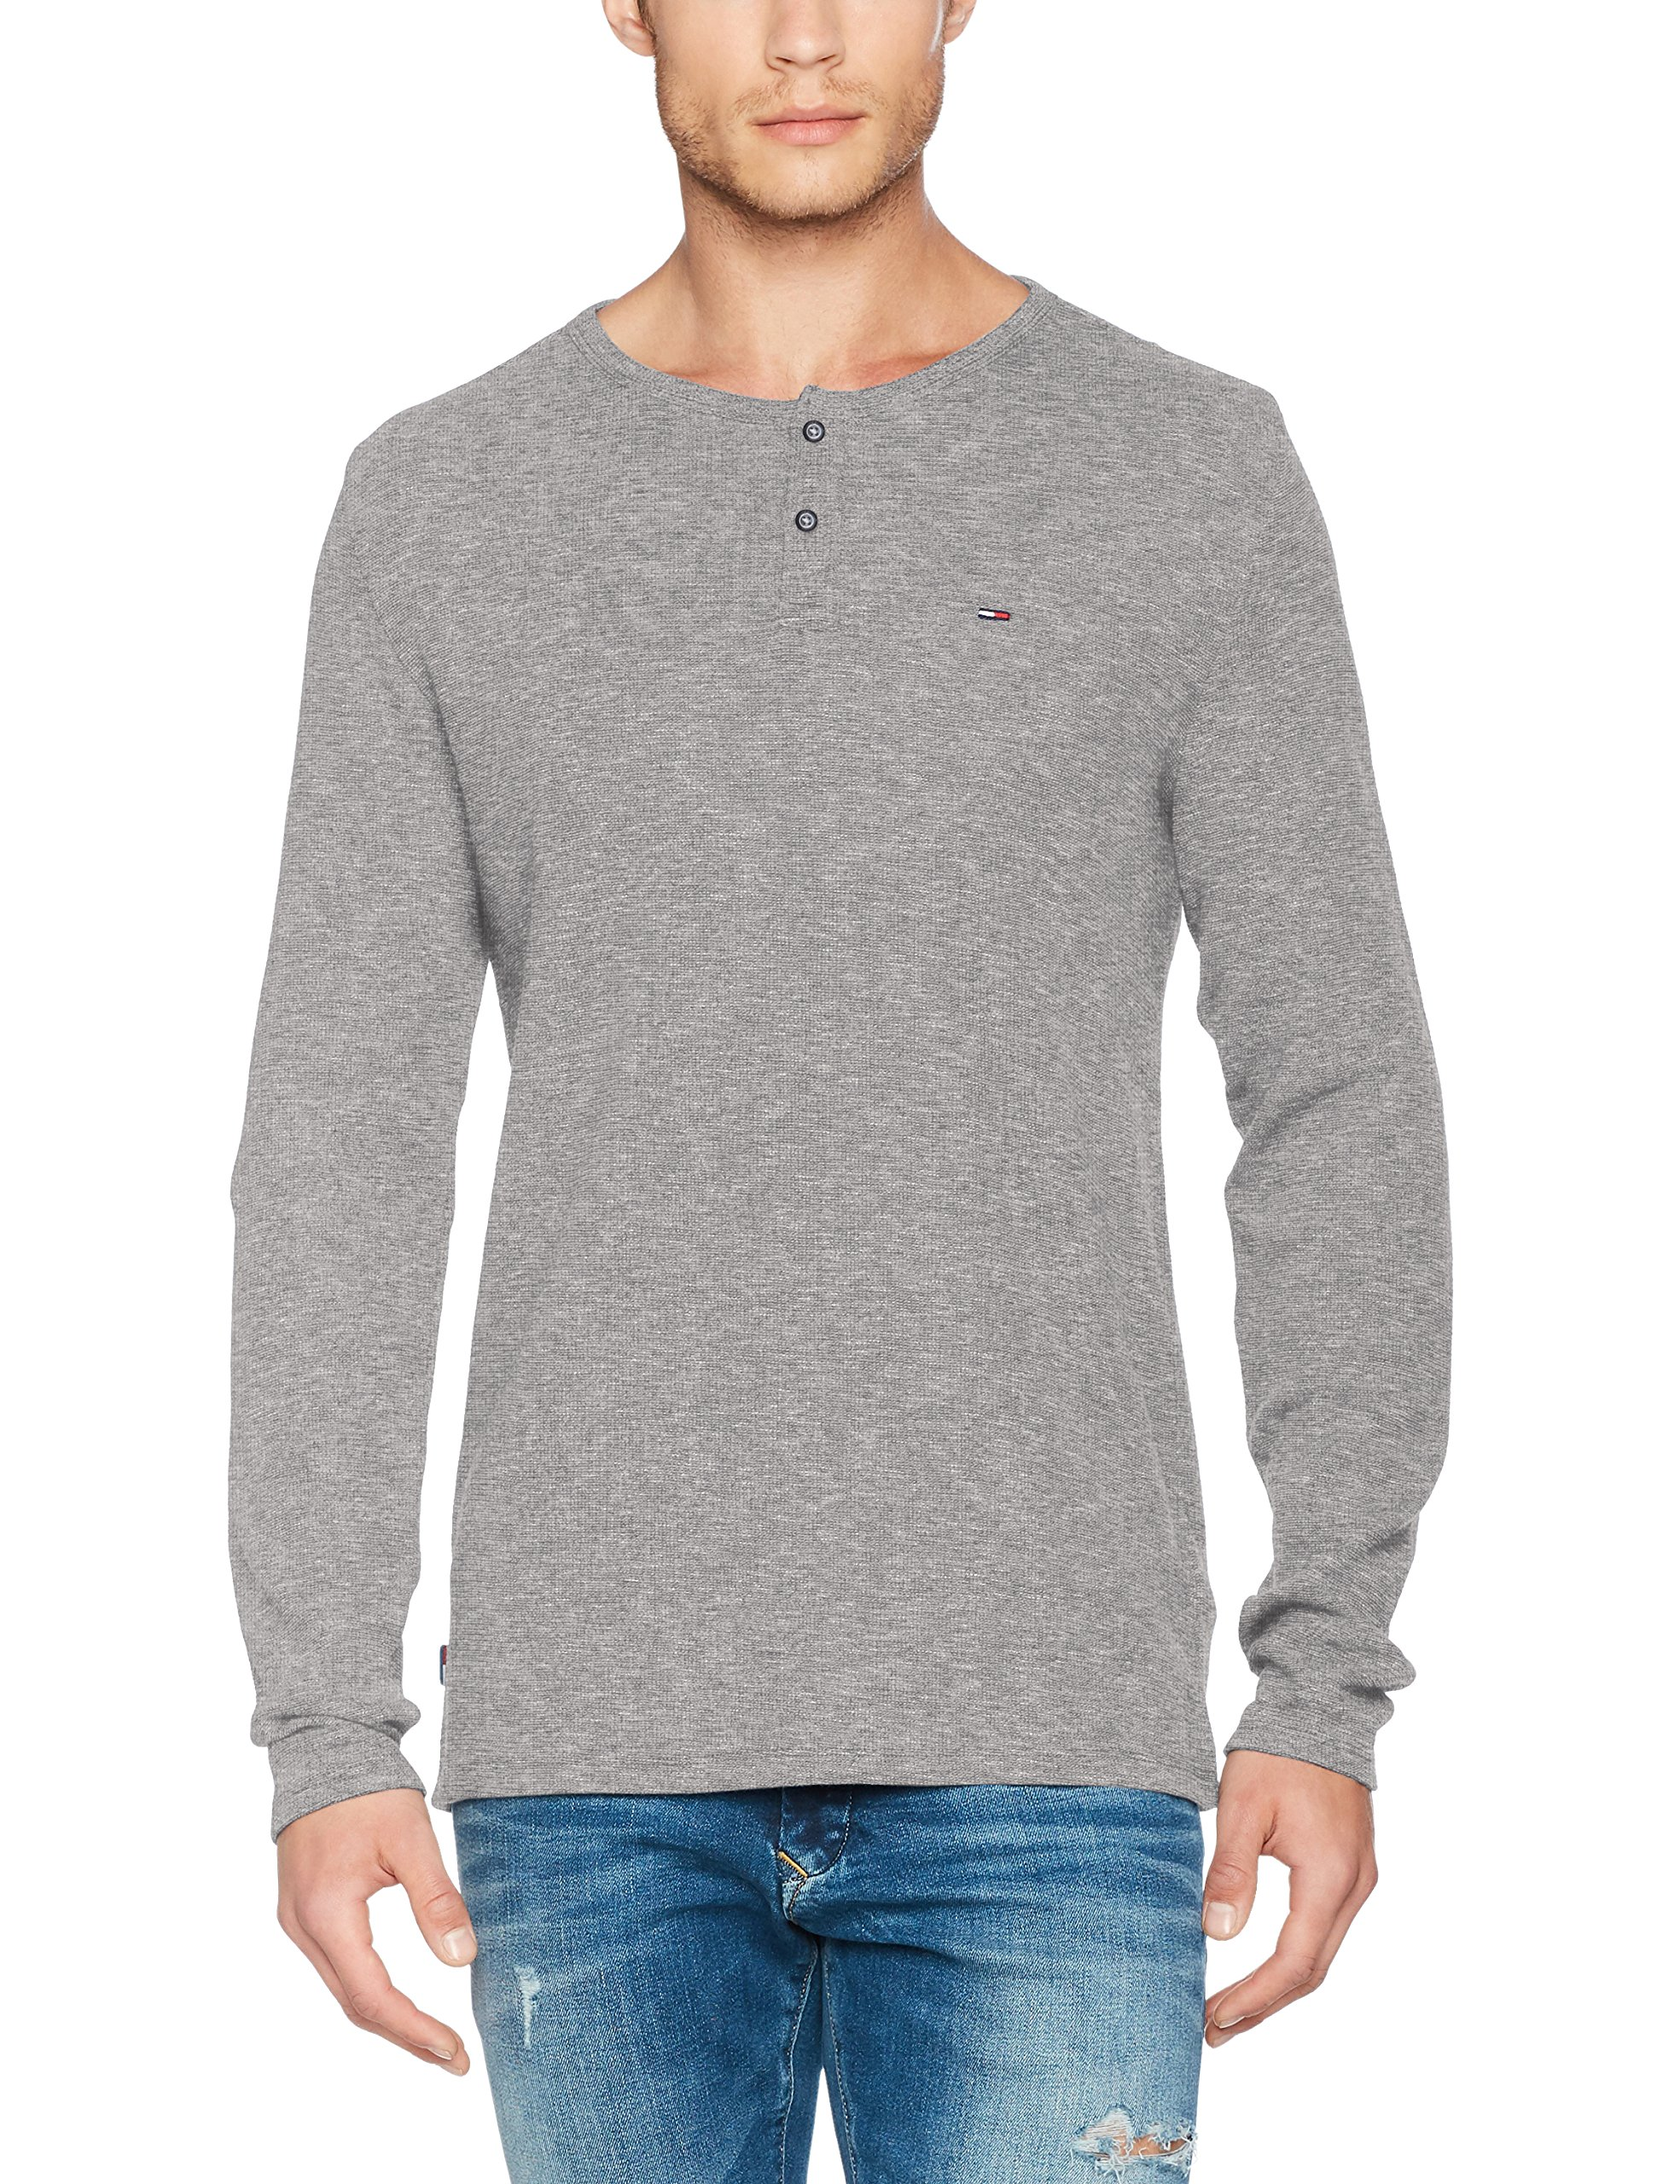 Grey Droite Tommy Grislt Homme Rlx Coupe Longues Pull Manches HtrSmall Jeans Henley 4R5jSc3LqA